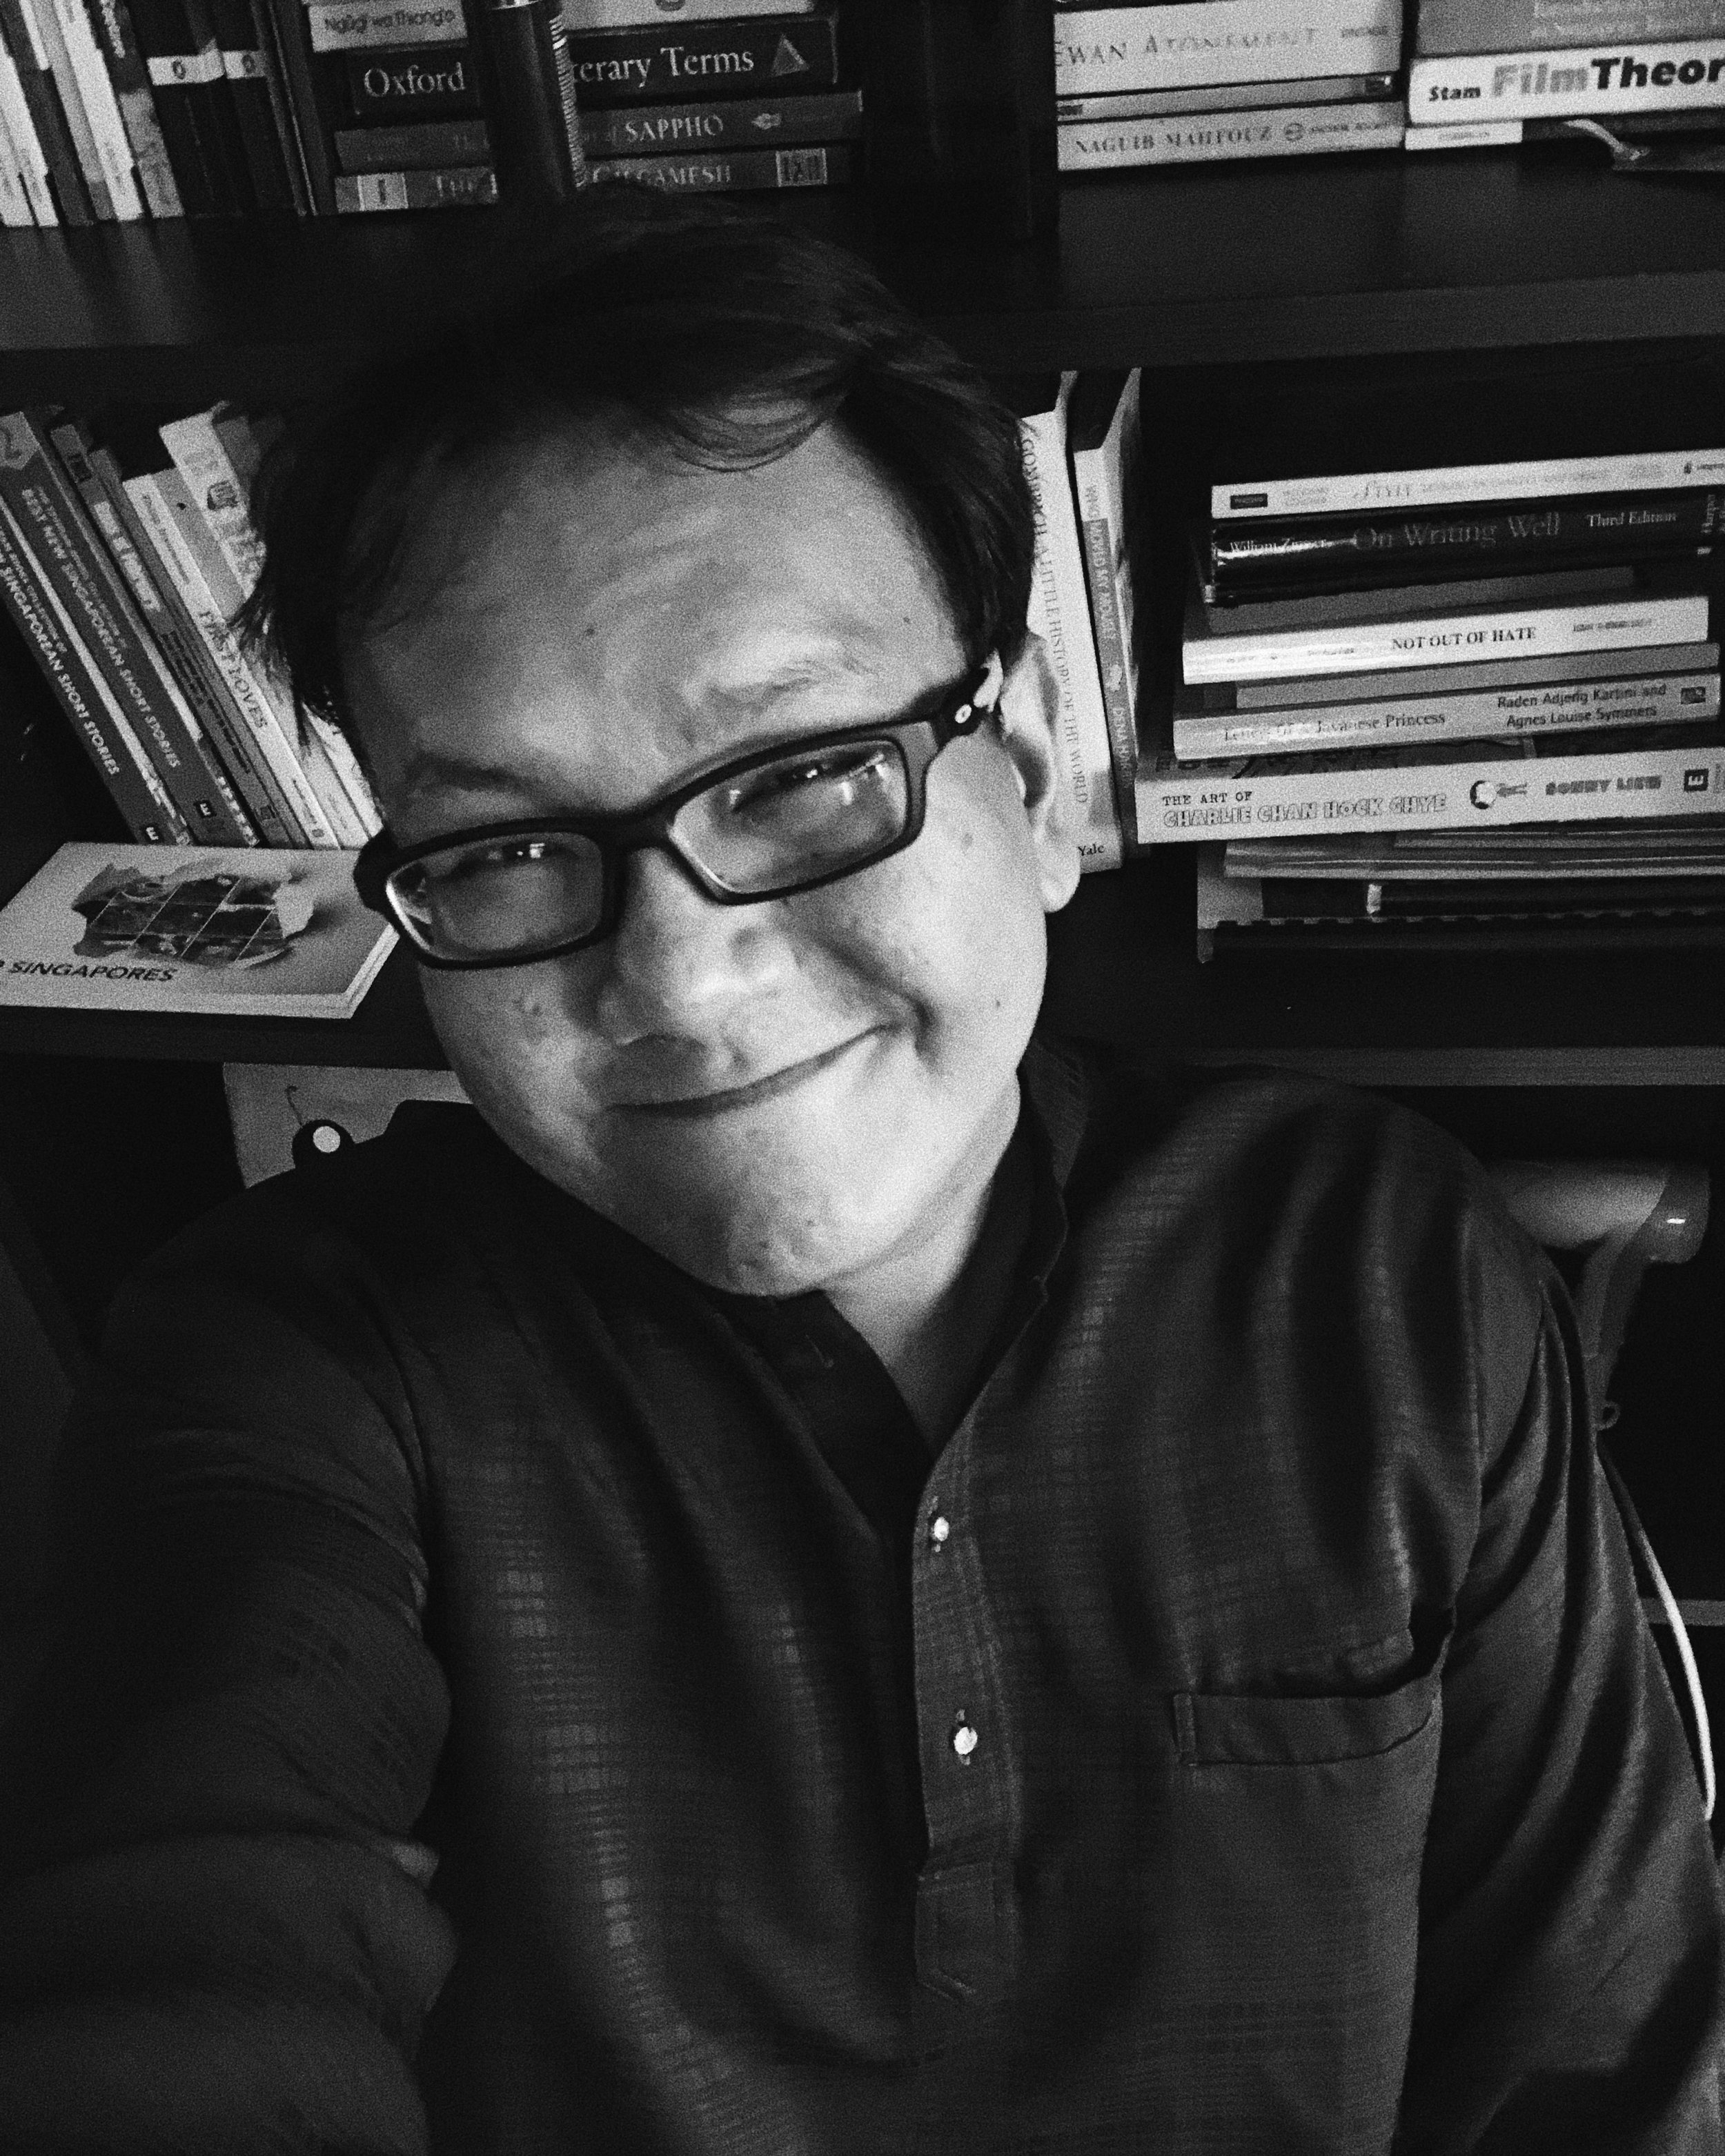 Hidhir Razak recently graduated from NTU's School of Humanities with an M.A in English, where he specialised in fiction writing. A lover of cats, he also writes poetry and likes mee soto. Hidhir was selected for his novel-in-progress,  Kemunting .